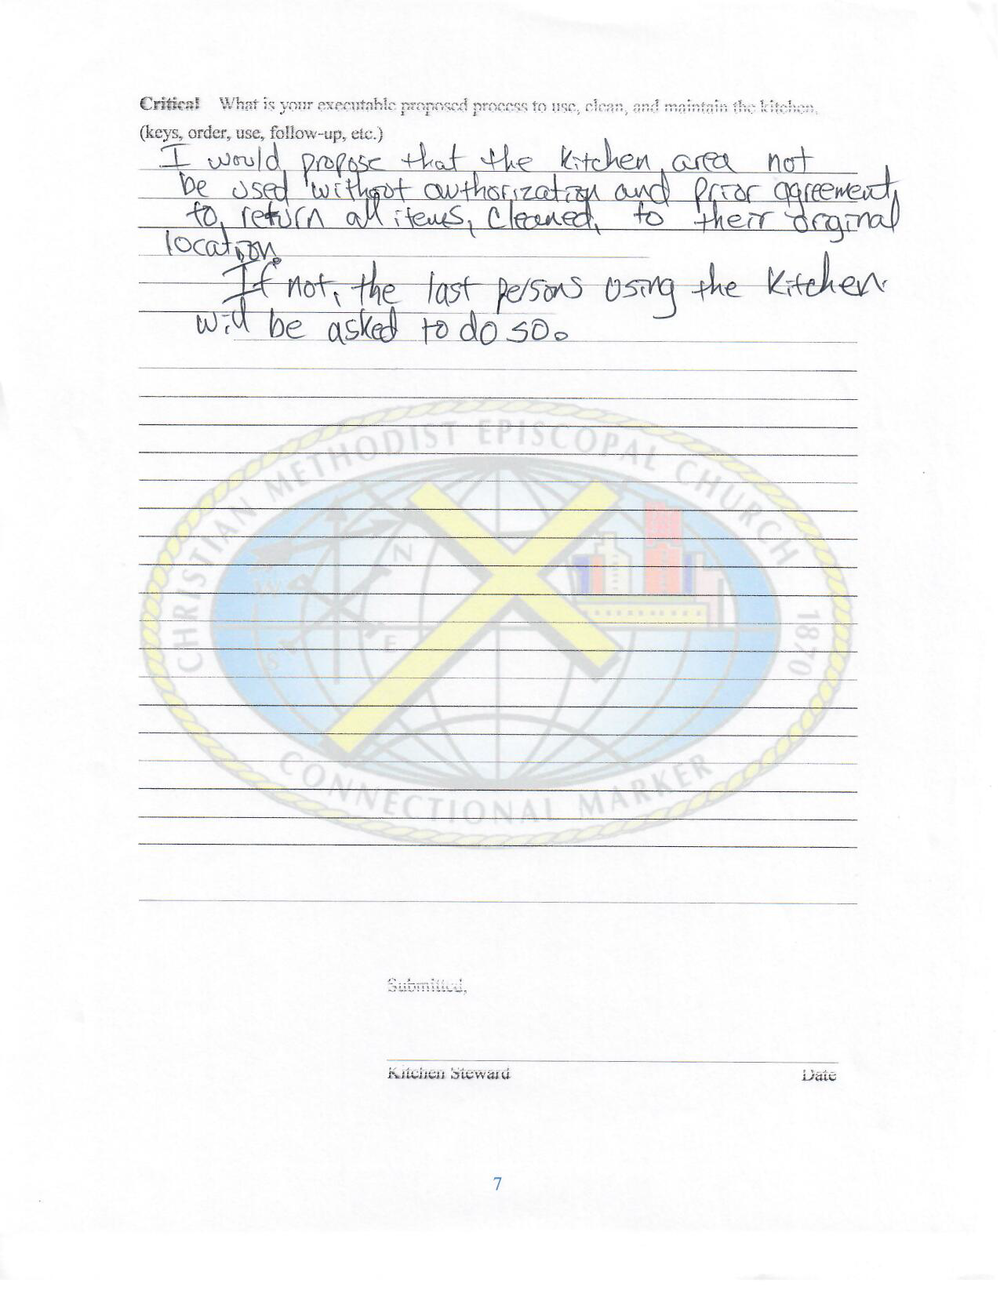 Kitchen Steward Planning Report_Page_7.png